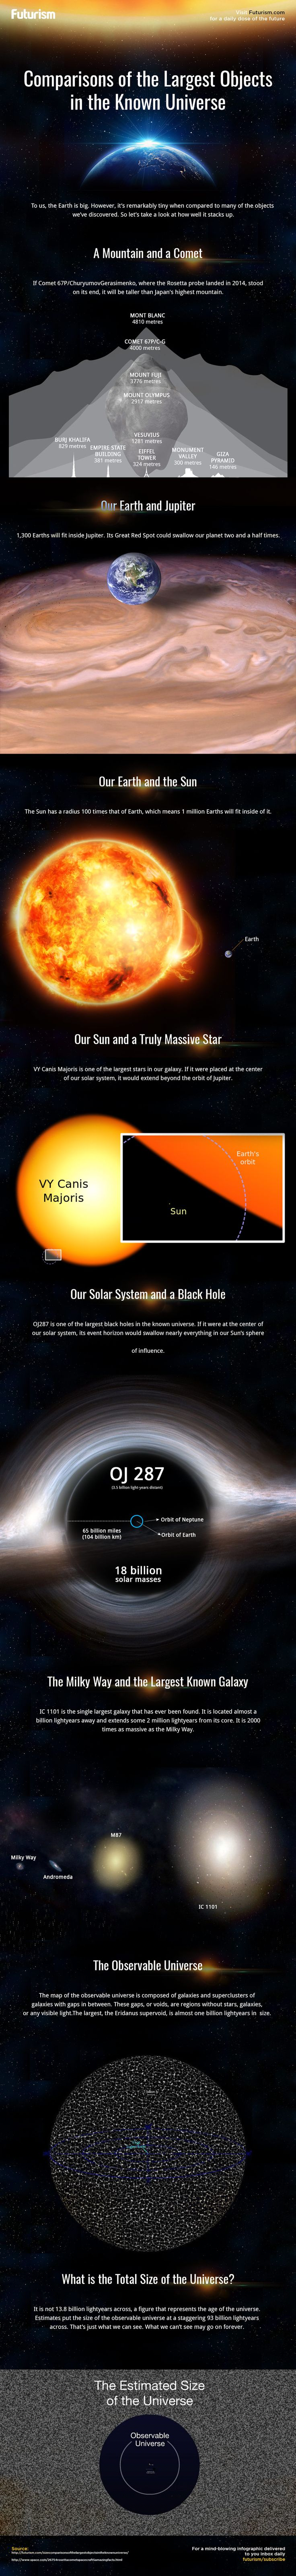 Comparing Sizes of the Largest Objects in the known universe - Take a journey through the cosmos, and see some of the largest objects that we've discovered.